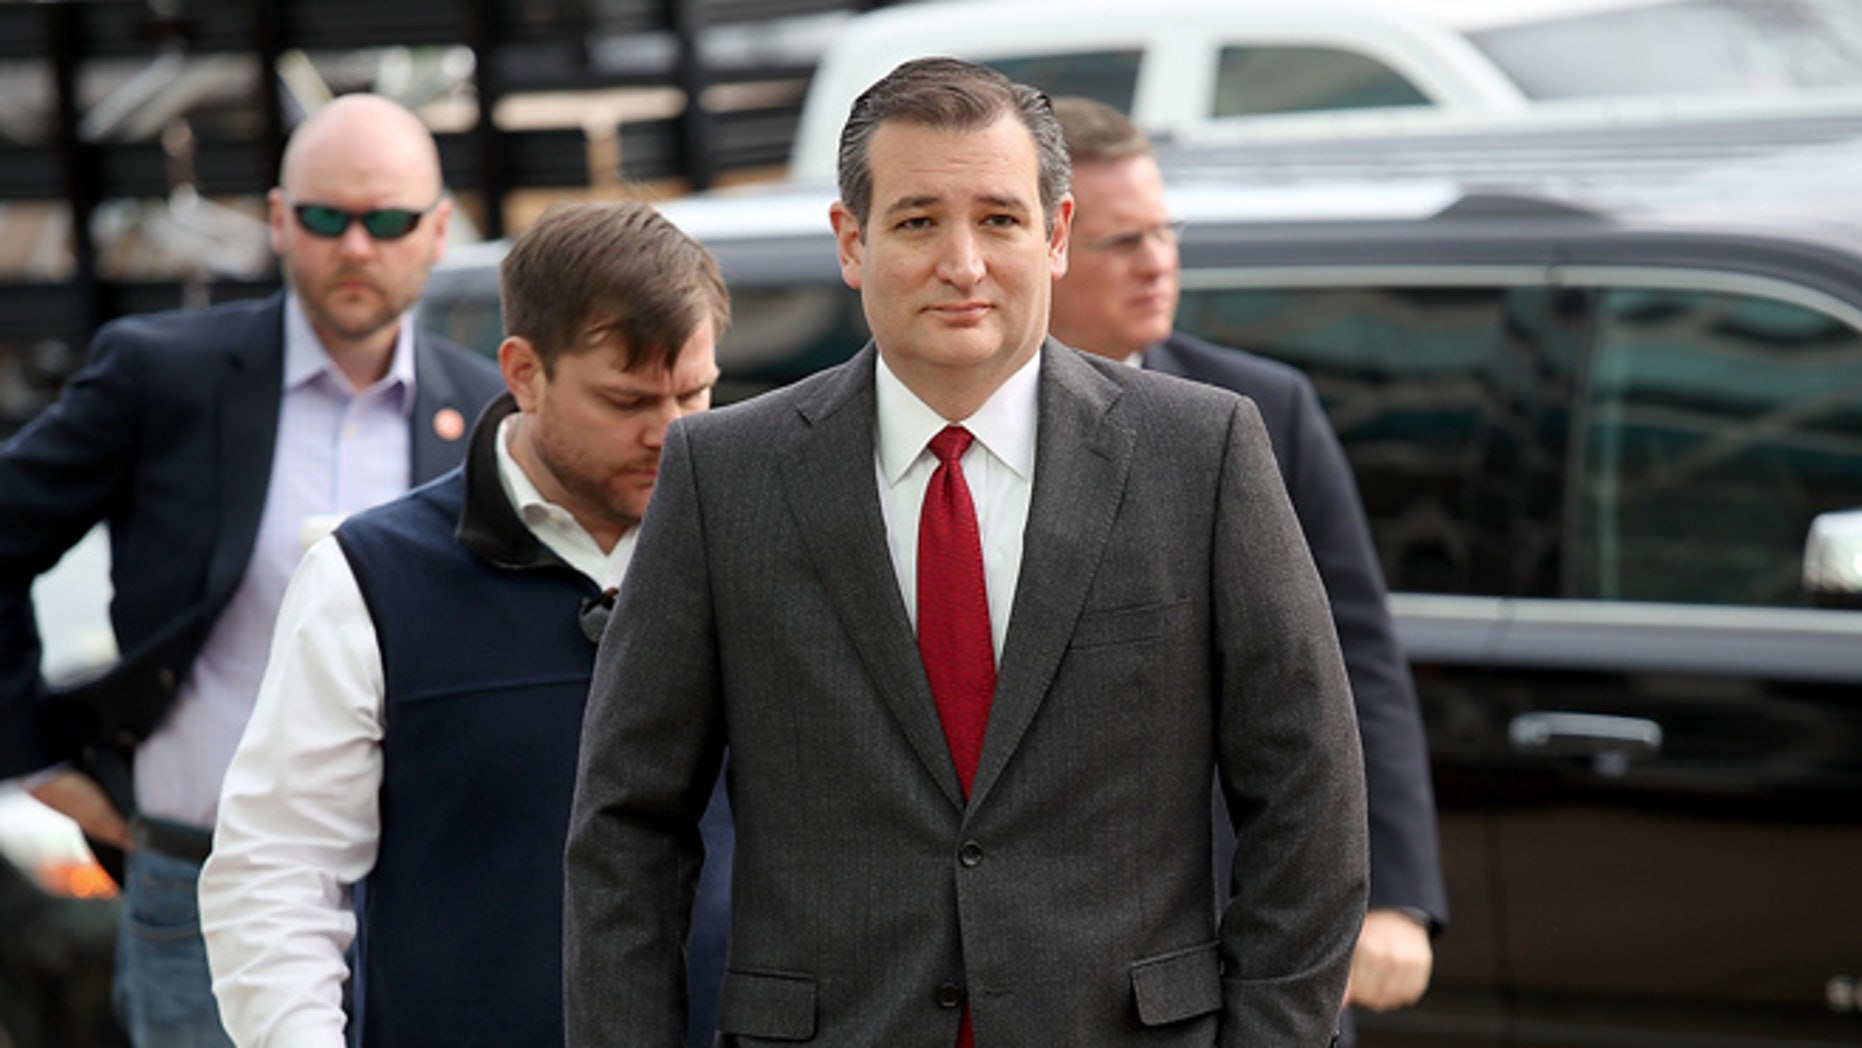 WASHINGTON, DC - MARCH 22:  Republican presidential candidate Sen. Ted Cruz (R-TX) arrives to address the bombings in Brussels during remarks March 22, 2016 in Washington, DC. Reports indicate at least 34 people have died and scores more injured in the bombings at the airport and Metro.  (Photo by Win McNamee/Getty Images)